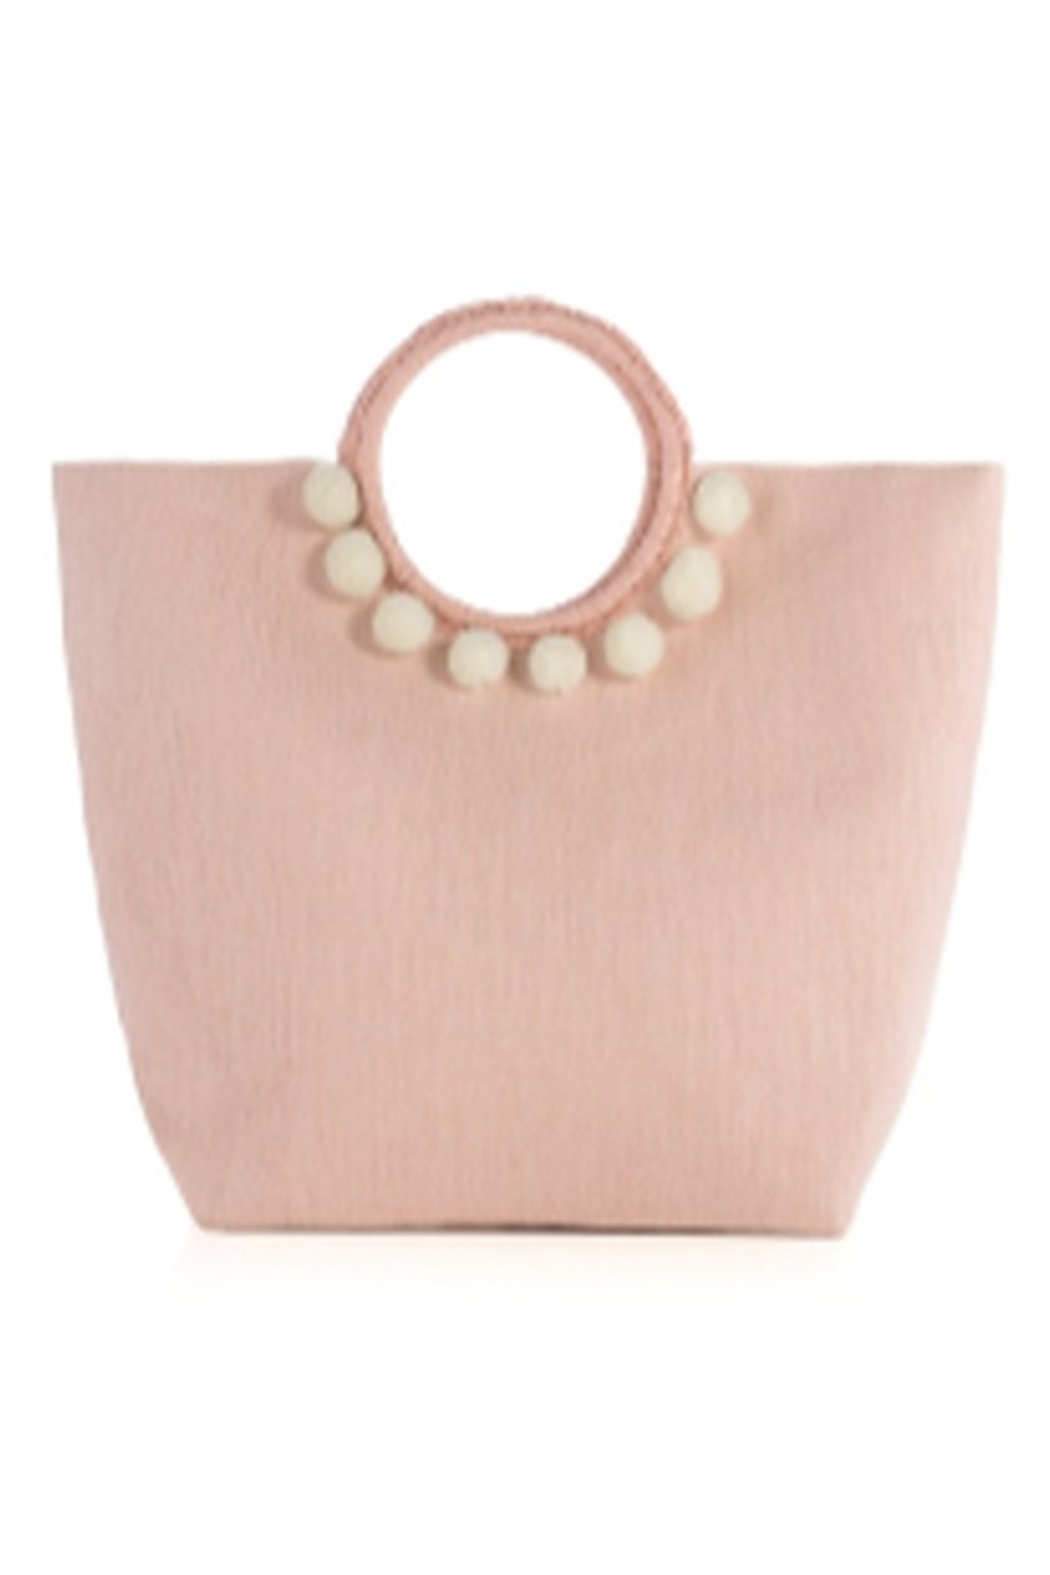 The Birds Nest MIA TOTE-PINK - Main Image